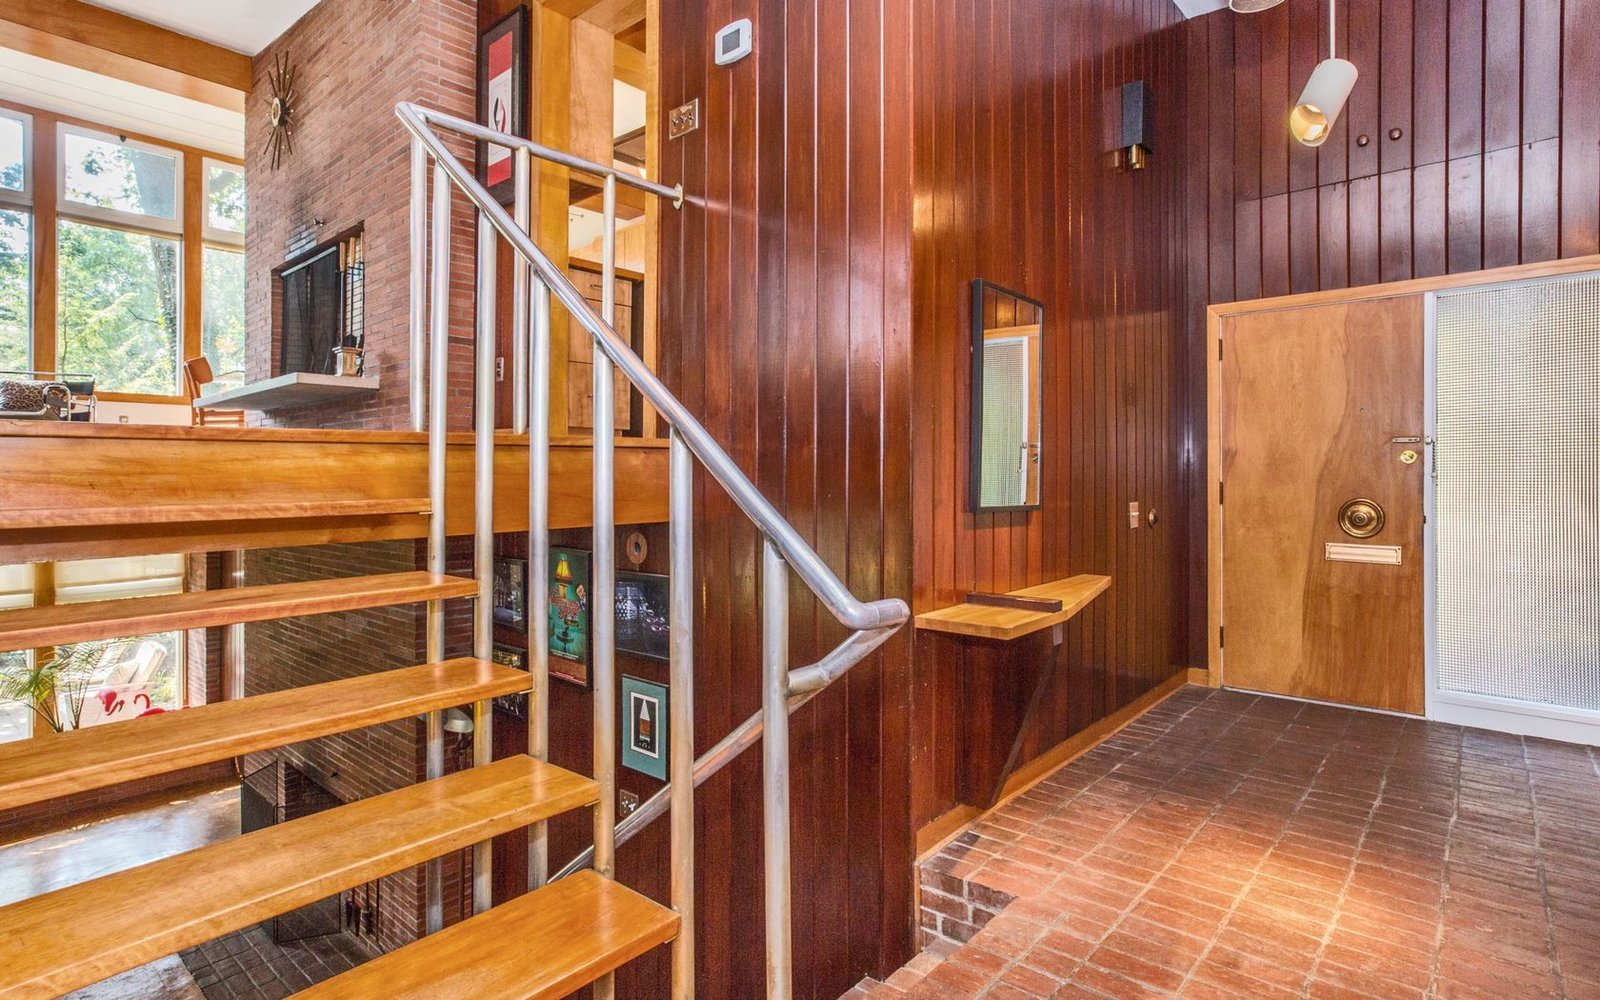 Hallway and Brick Floor Entry Foyer  Classic Mid Century Modern home for sale